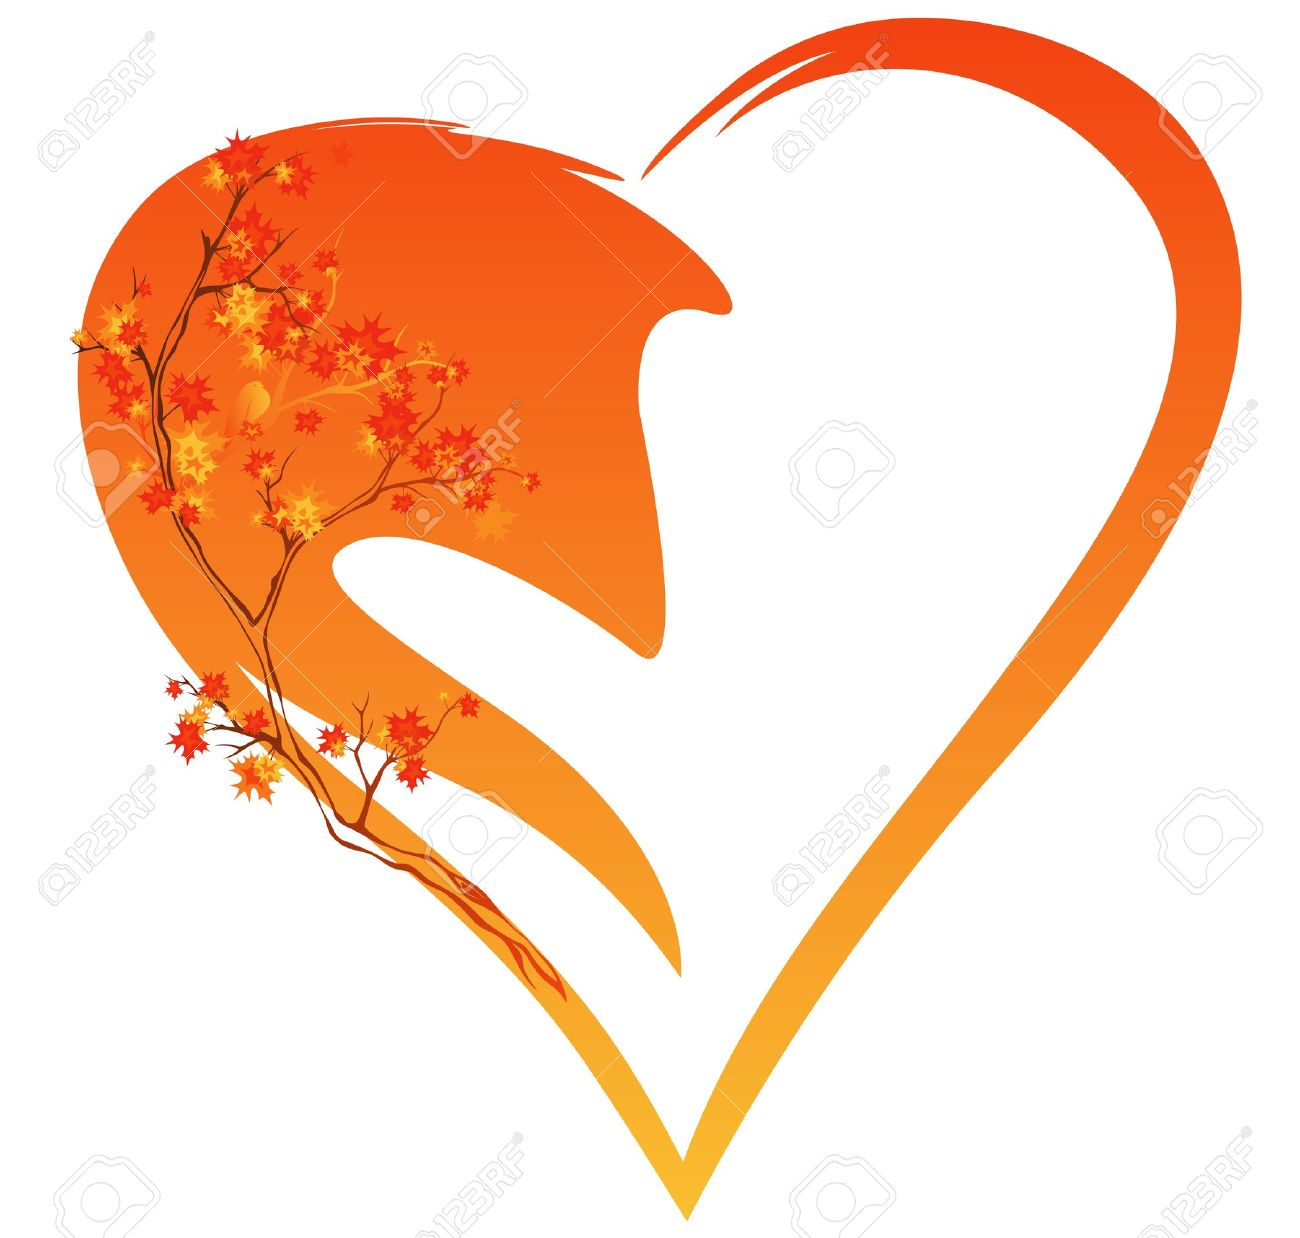 autumn season decoration - yellow-red heart and tree branches vector illustration Stock Vector - 14920344